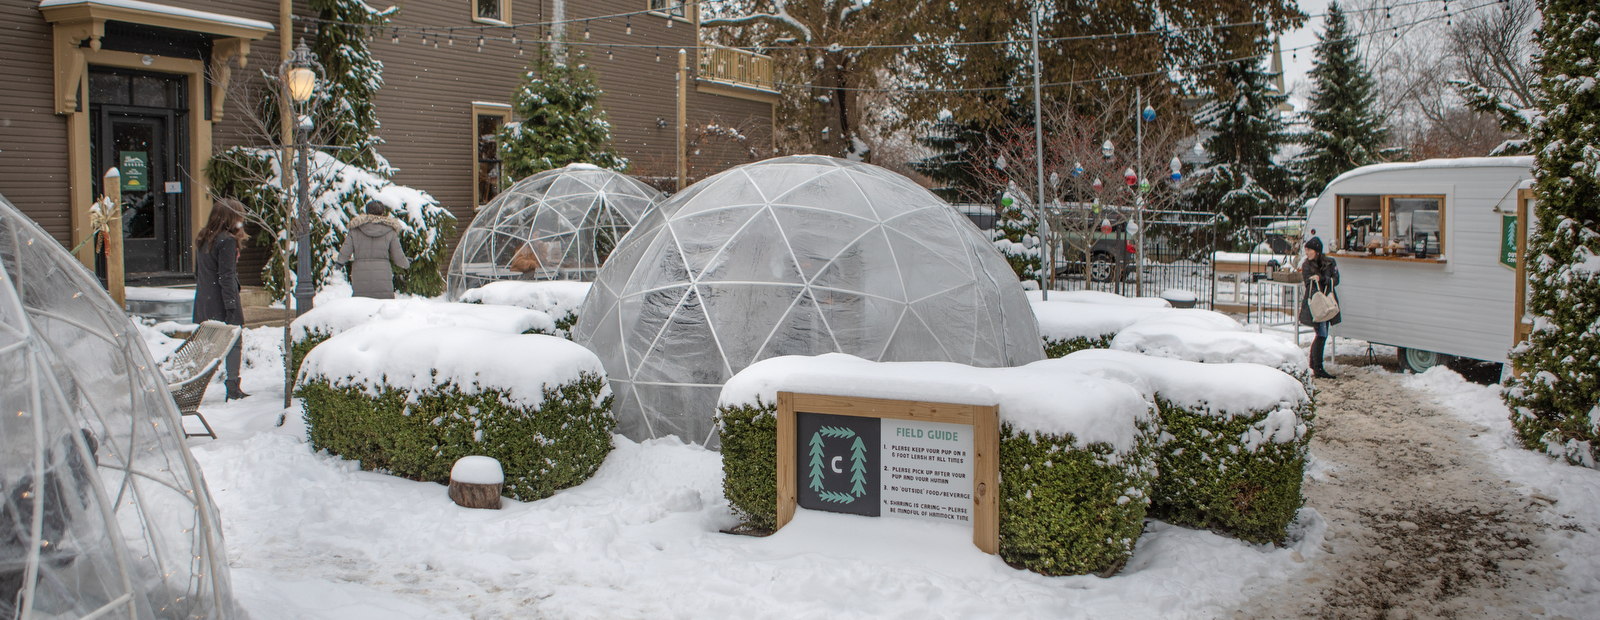 Outside Coffee Co. keeps people warm with domes and drink through winter.